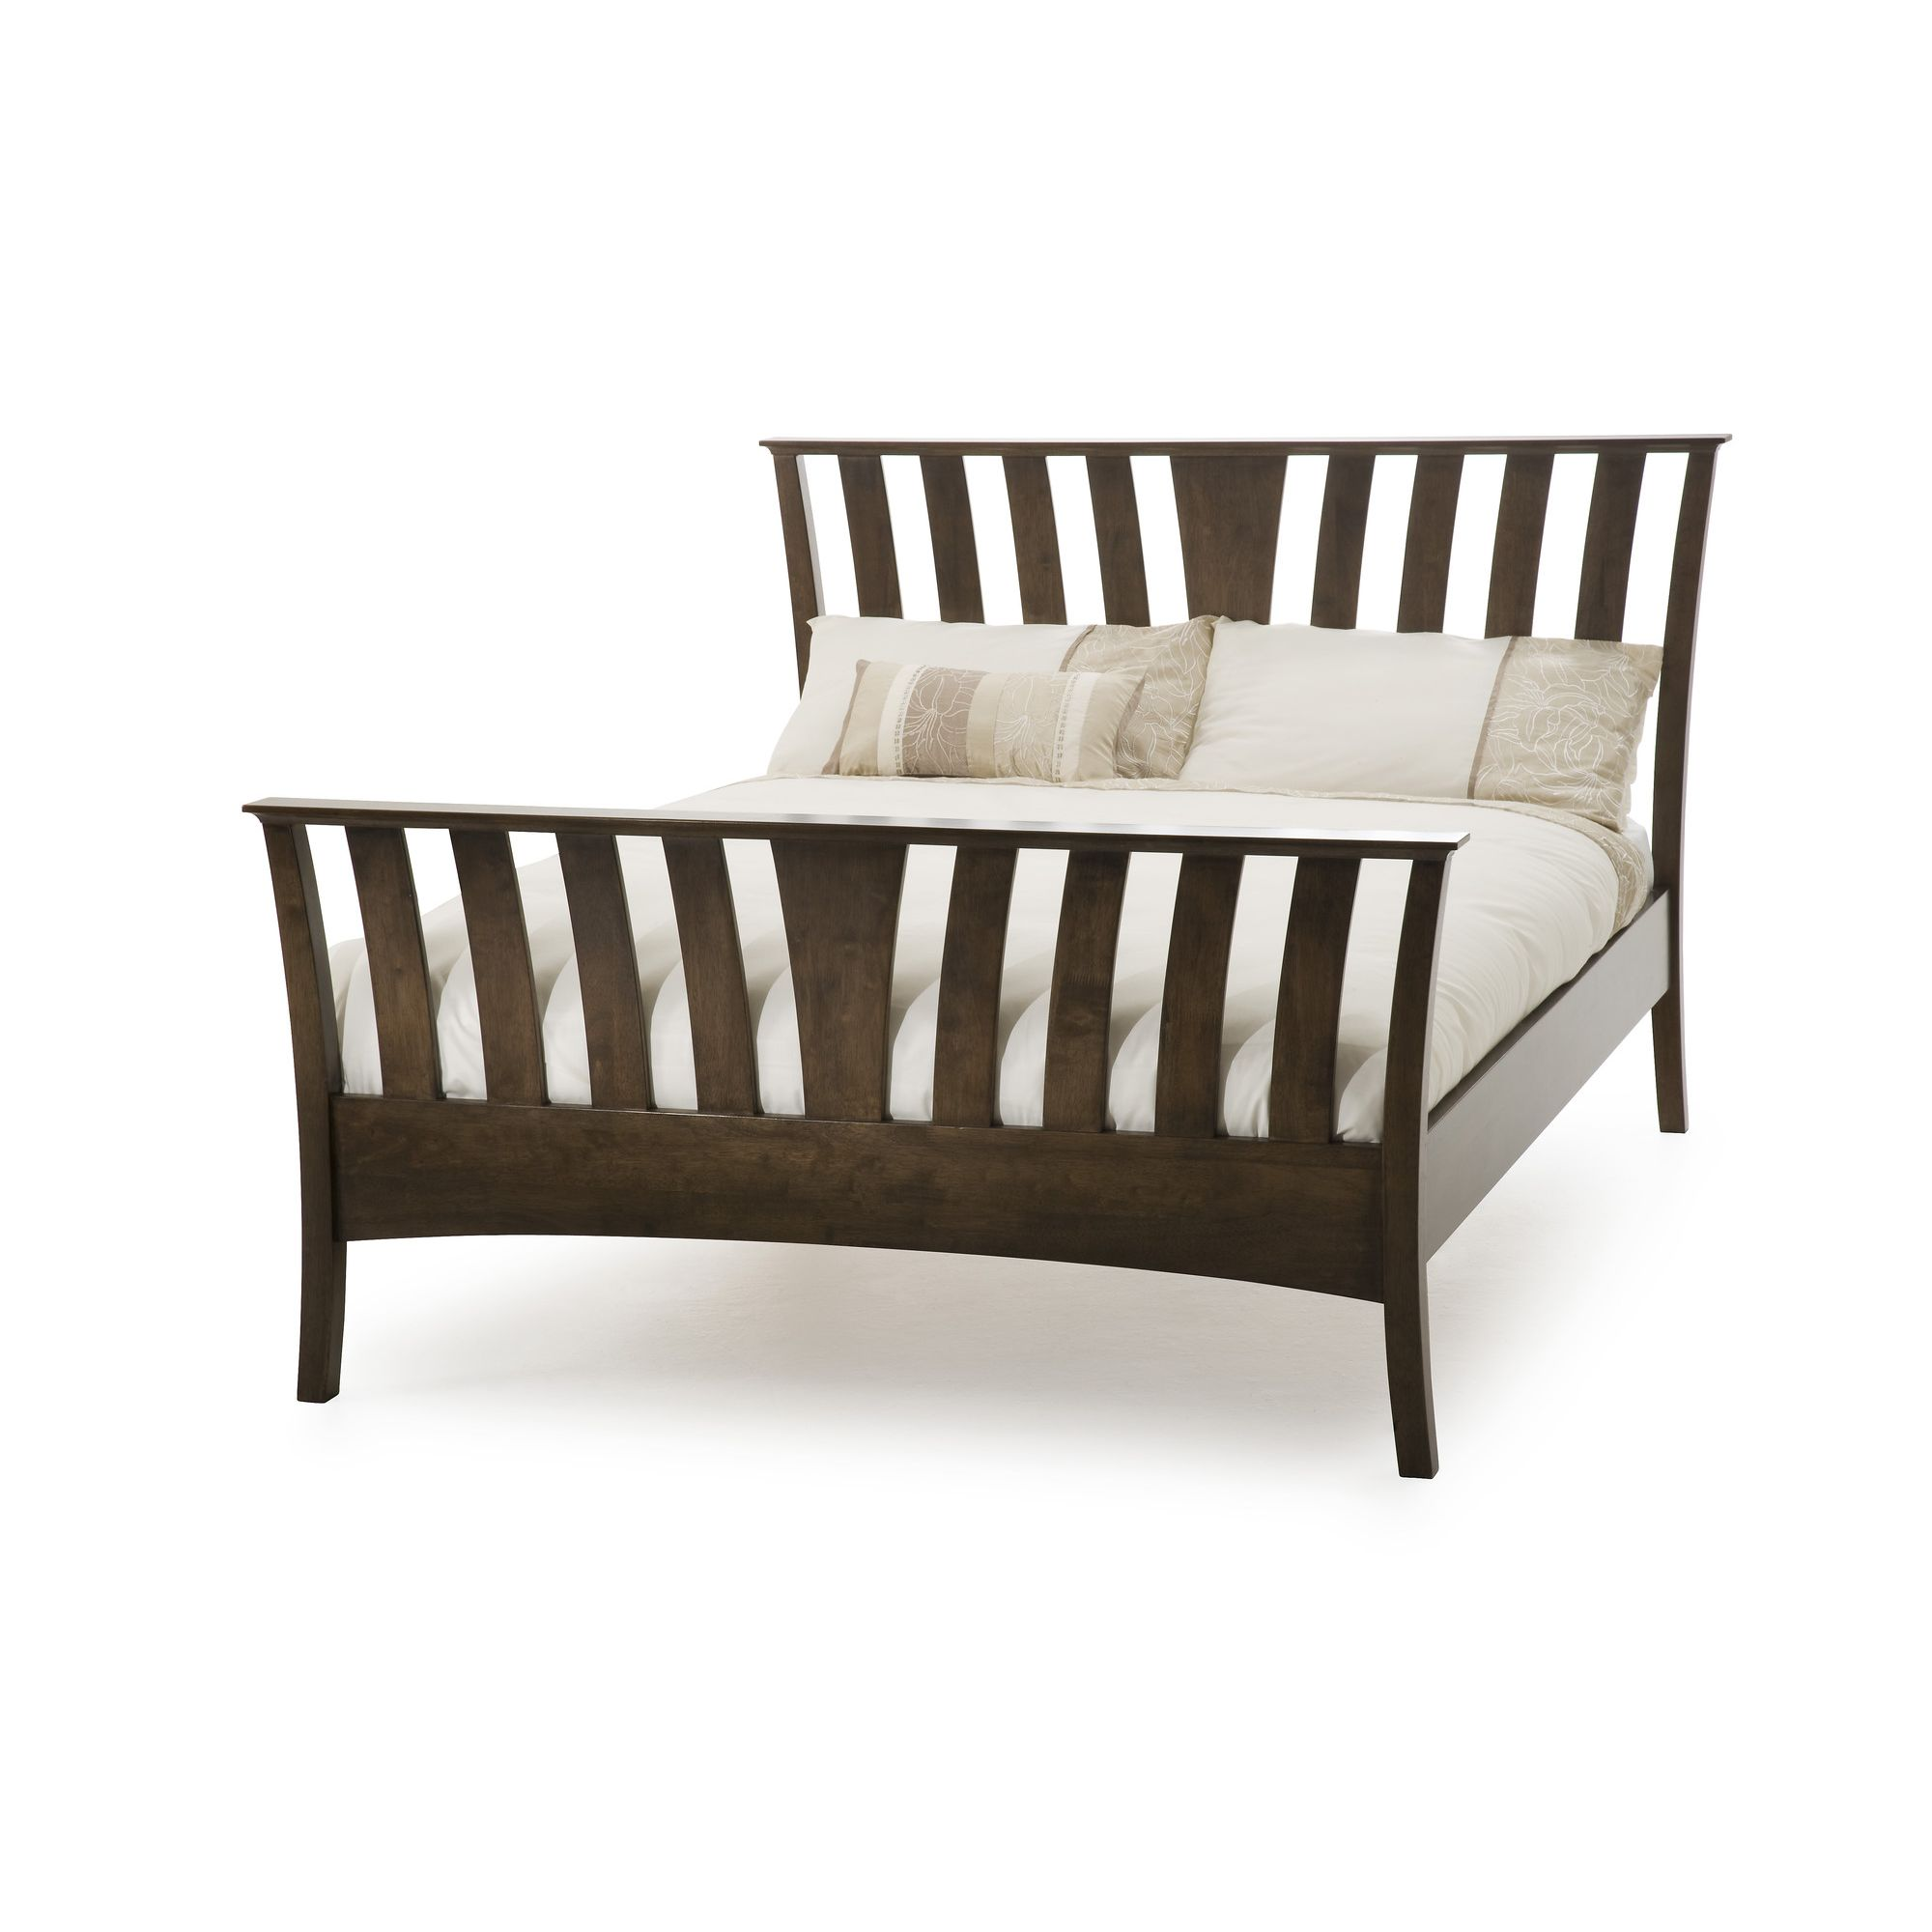 Serene Furnishings Ordelia Bed - Double - Walnut at Tesco Direct